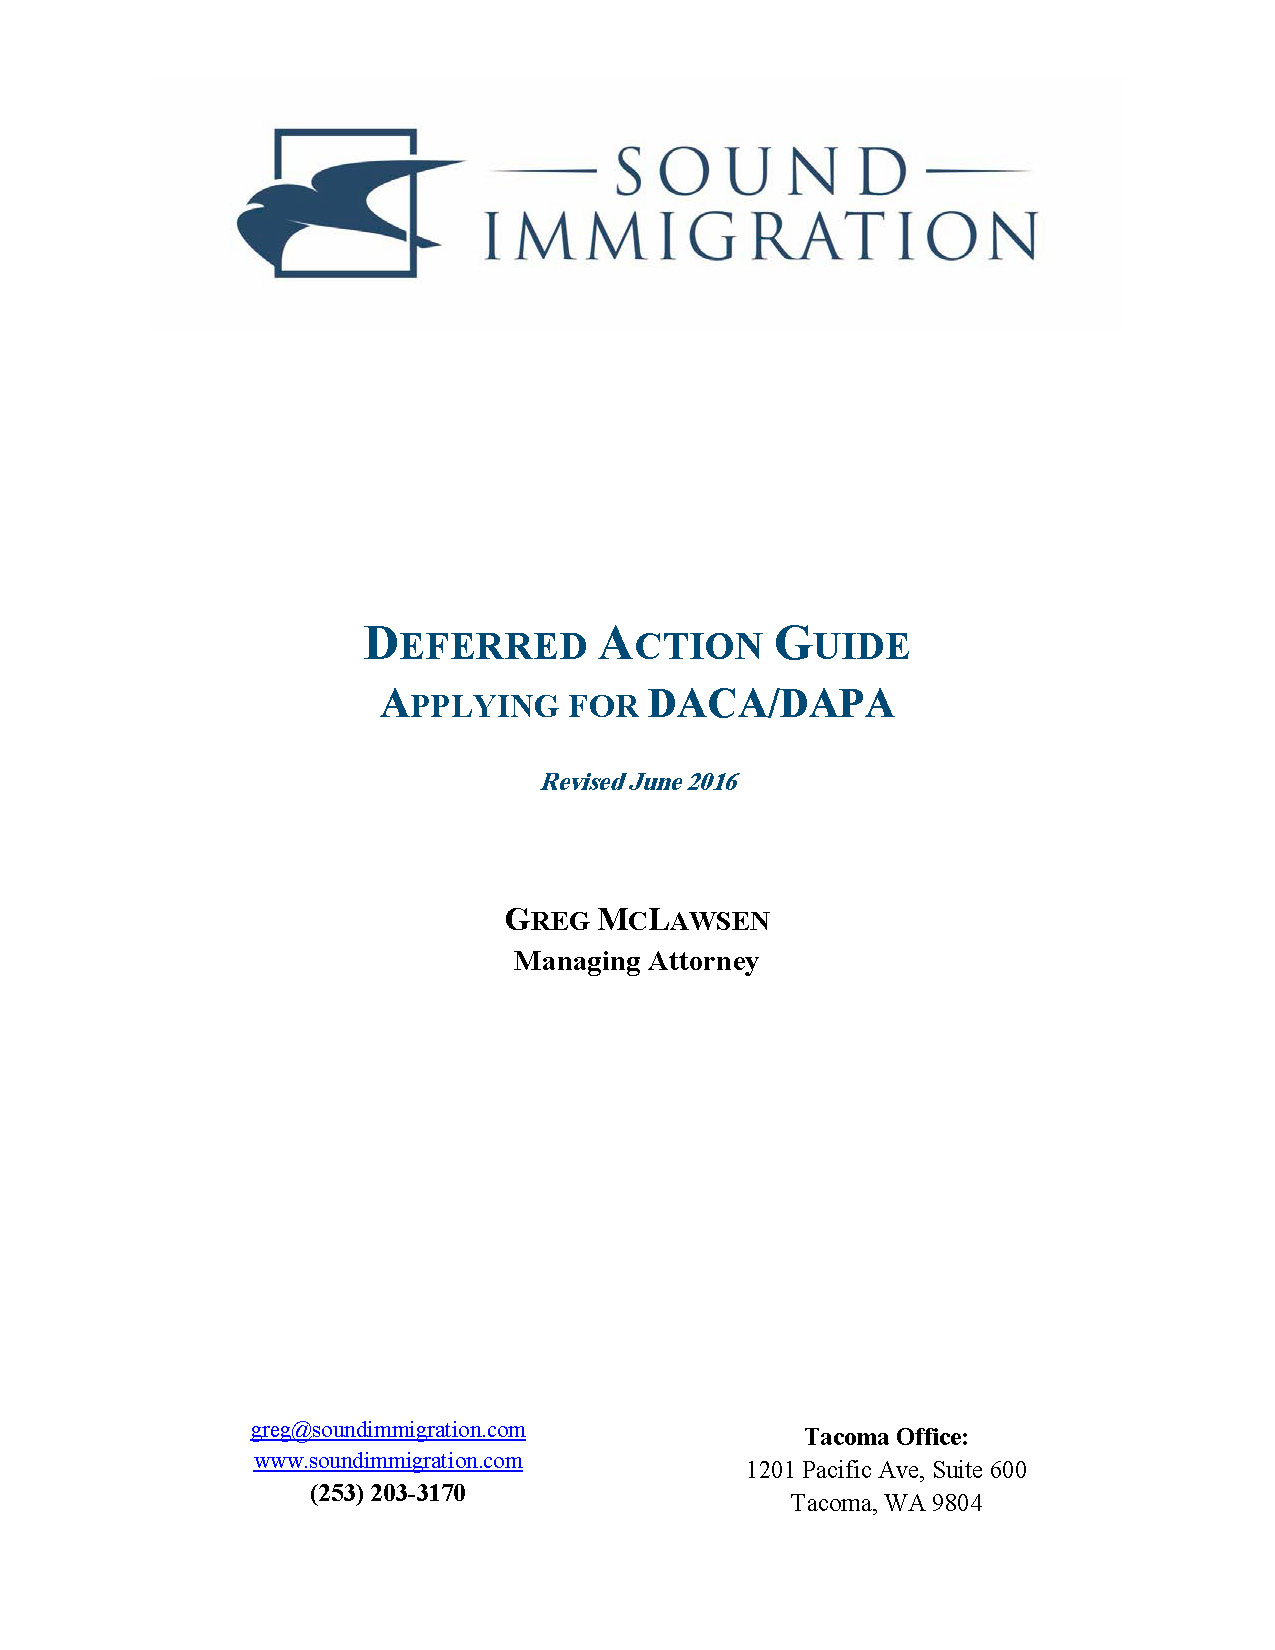 Deferred Action Guide; Applying For DACA/DAPA